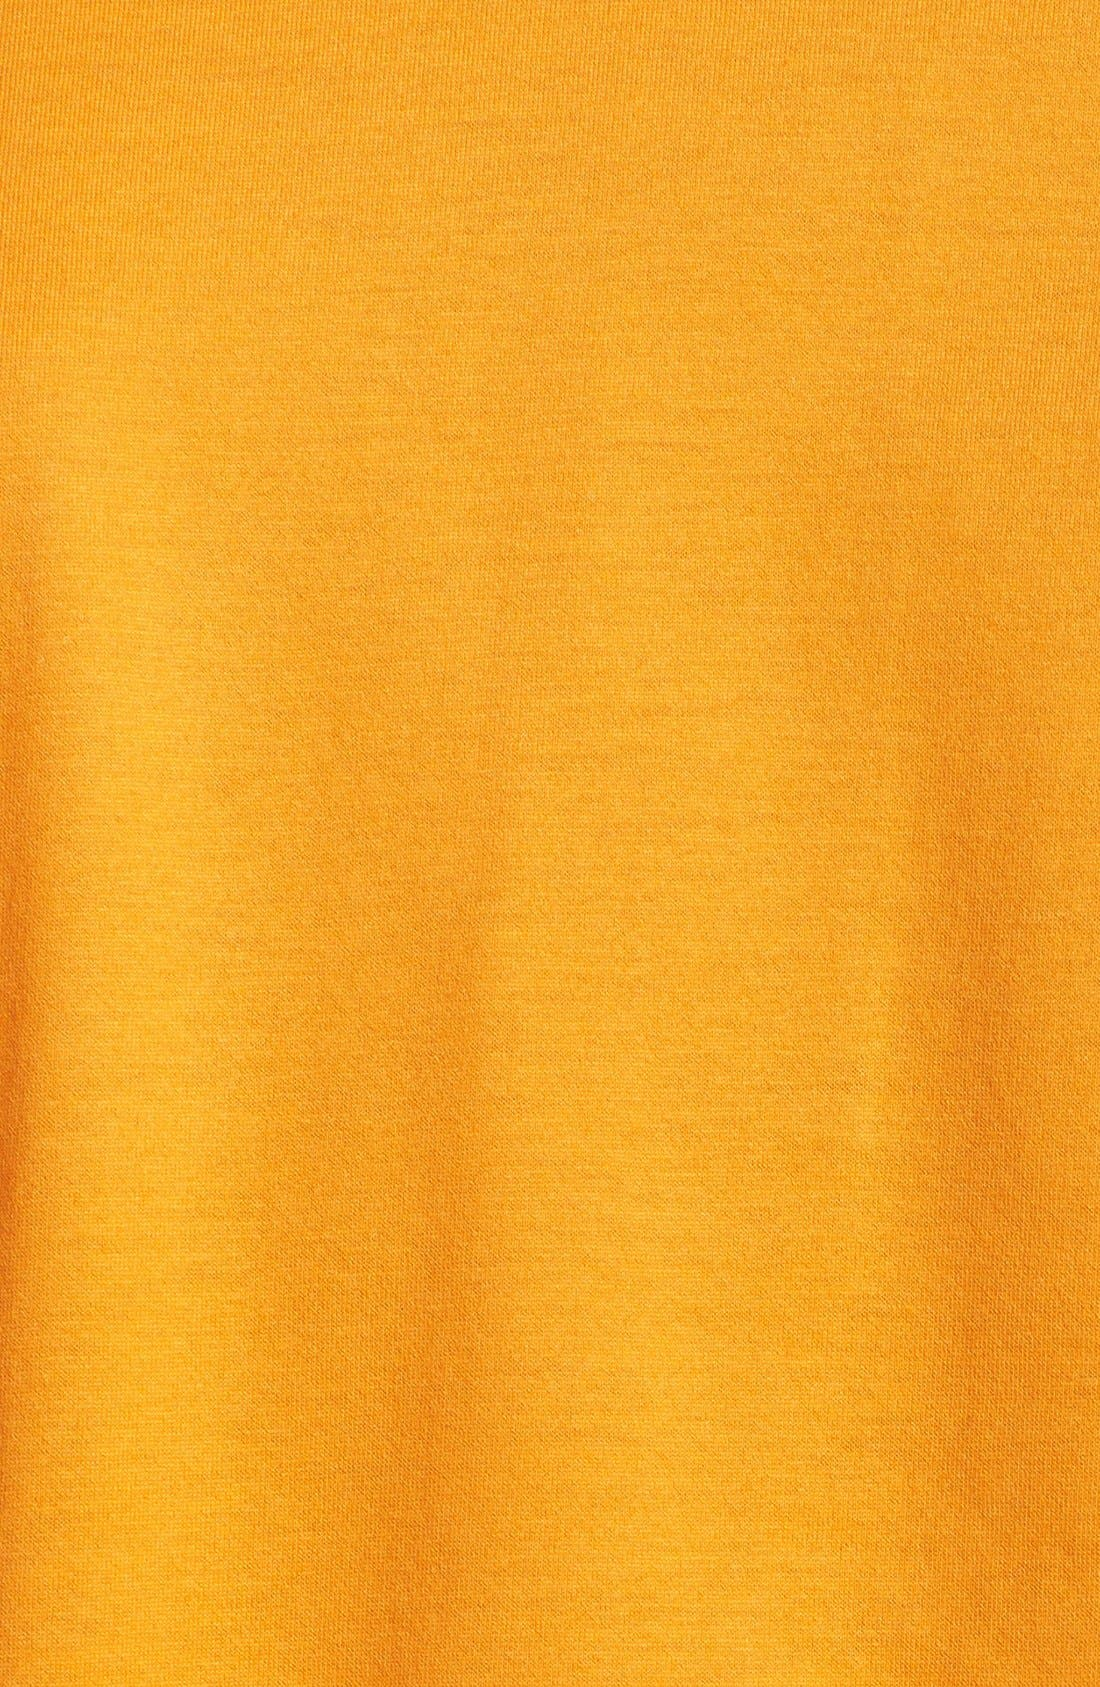 Alternate Image 3  - Peter Millar 'University of Tennessee' Classic Polo